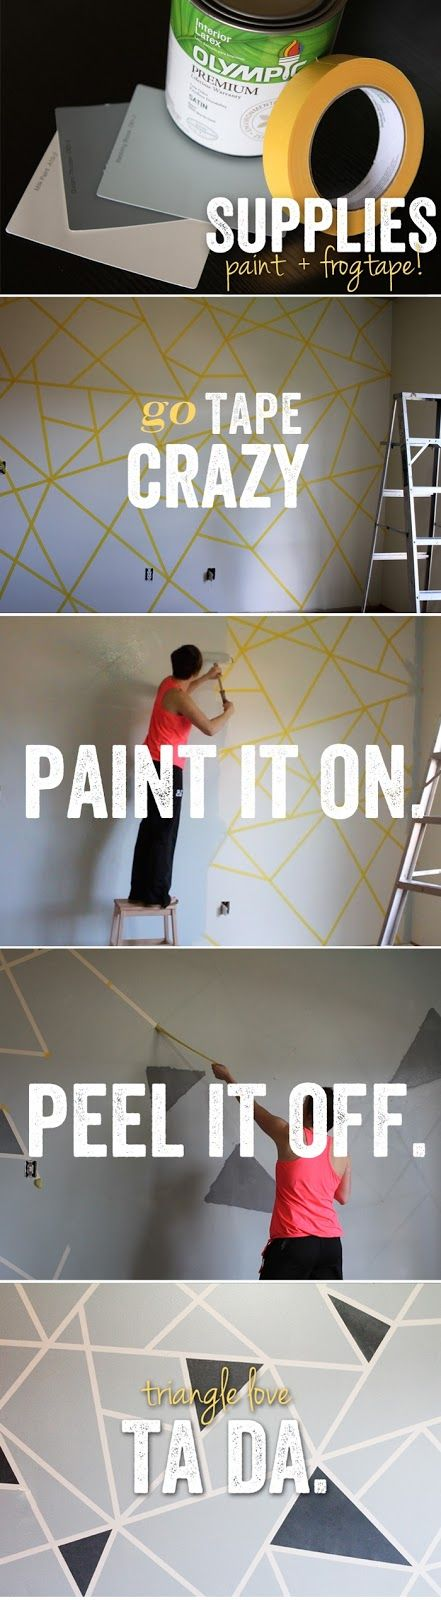 signed by tina: Tip of the Day! Paint tape wall idea!